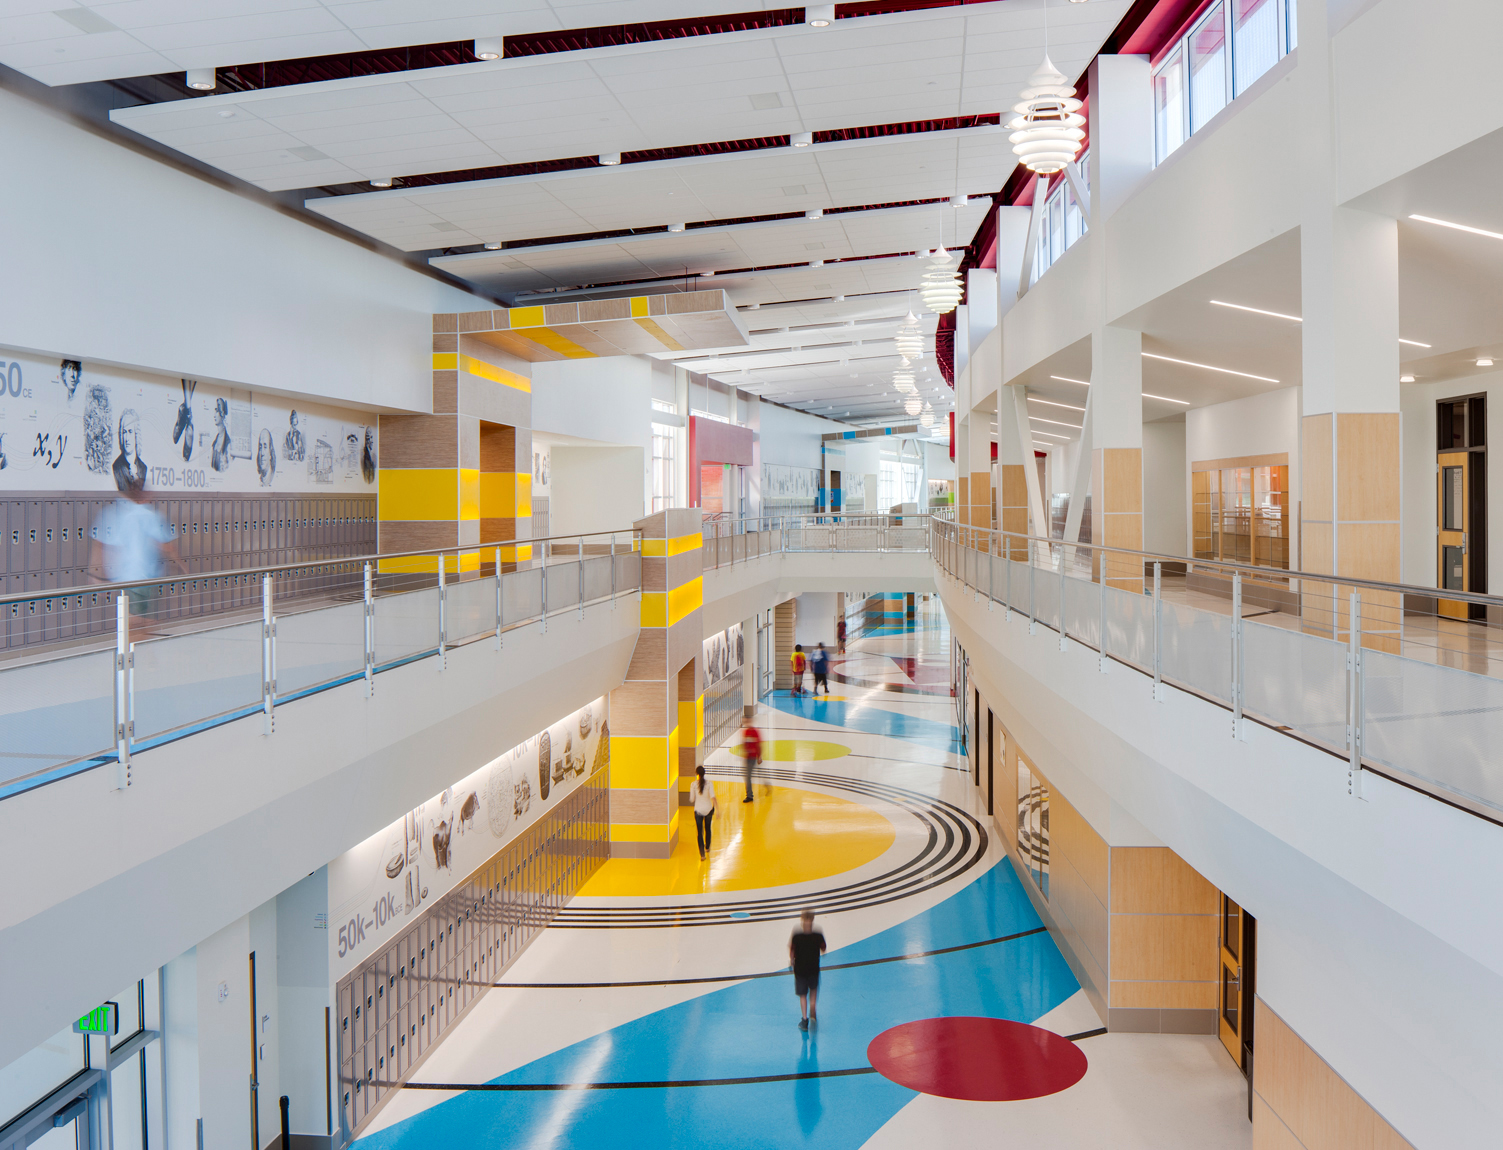 View down curved main hall of middle school with students in motion. MHTN Architects / Hogan & Associates